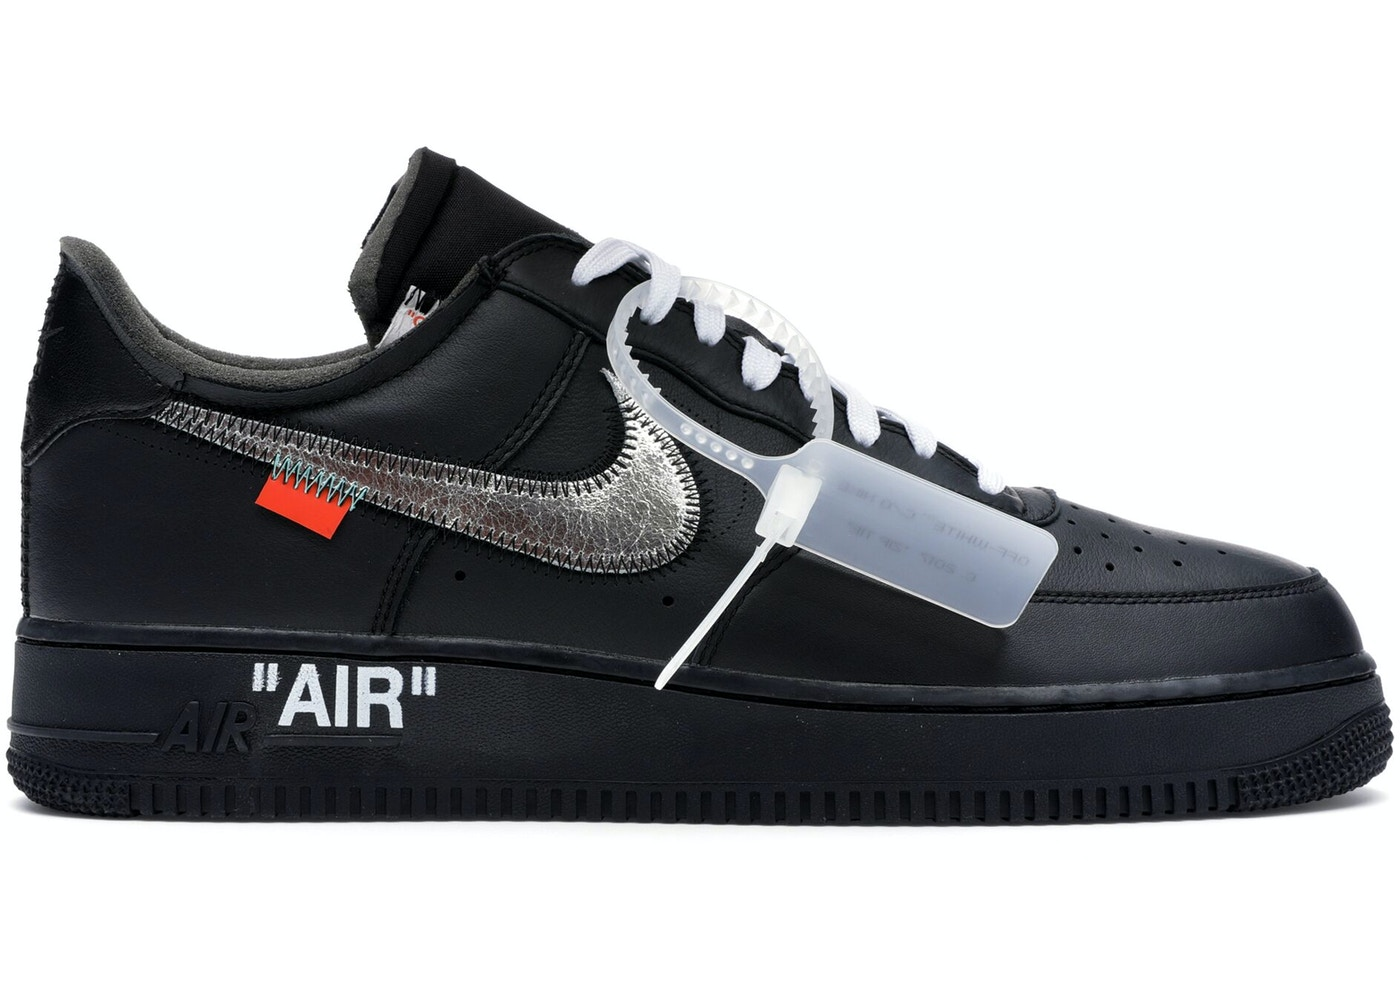 acheter populaire 119e6 ac8d7 Air Force 1 '07 Virgil x MoMA (No Socks)